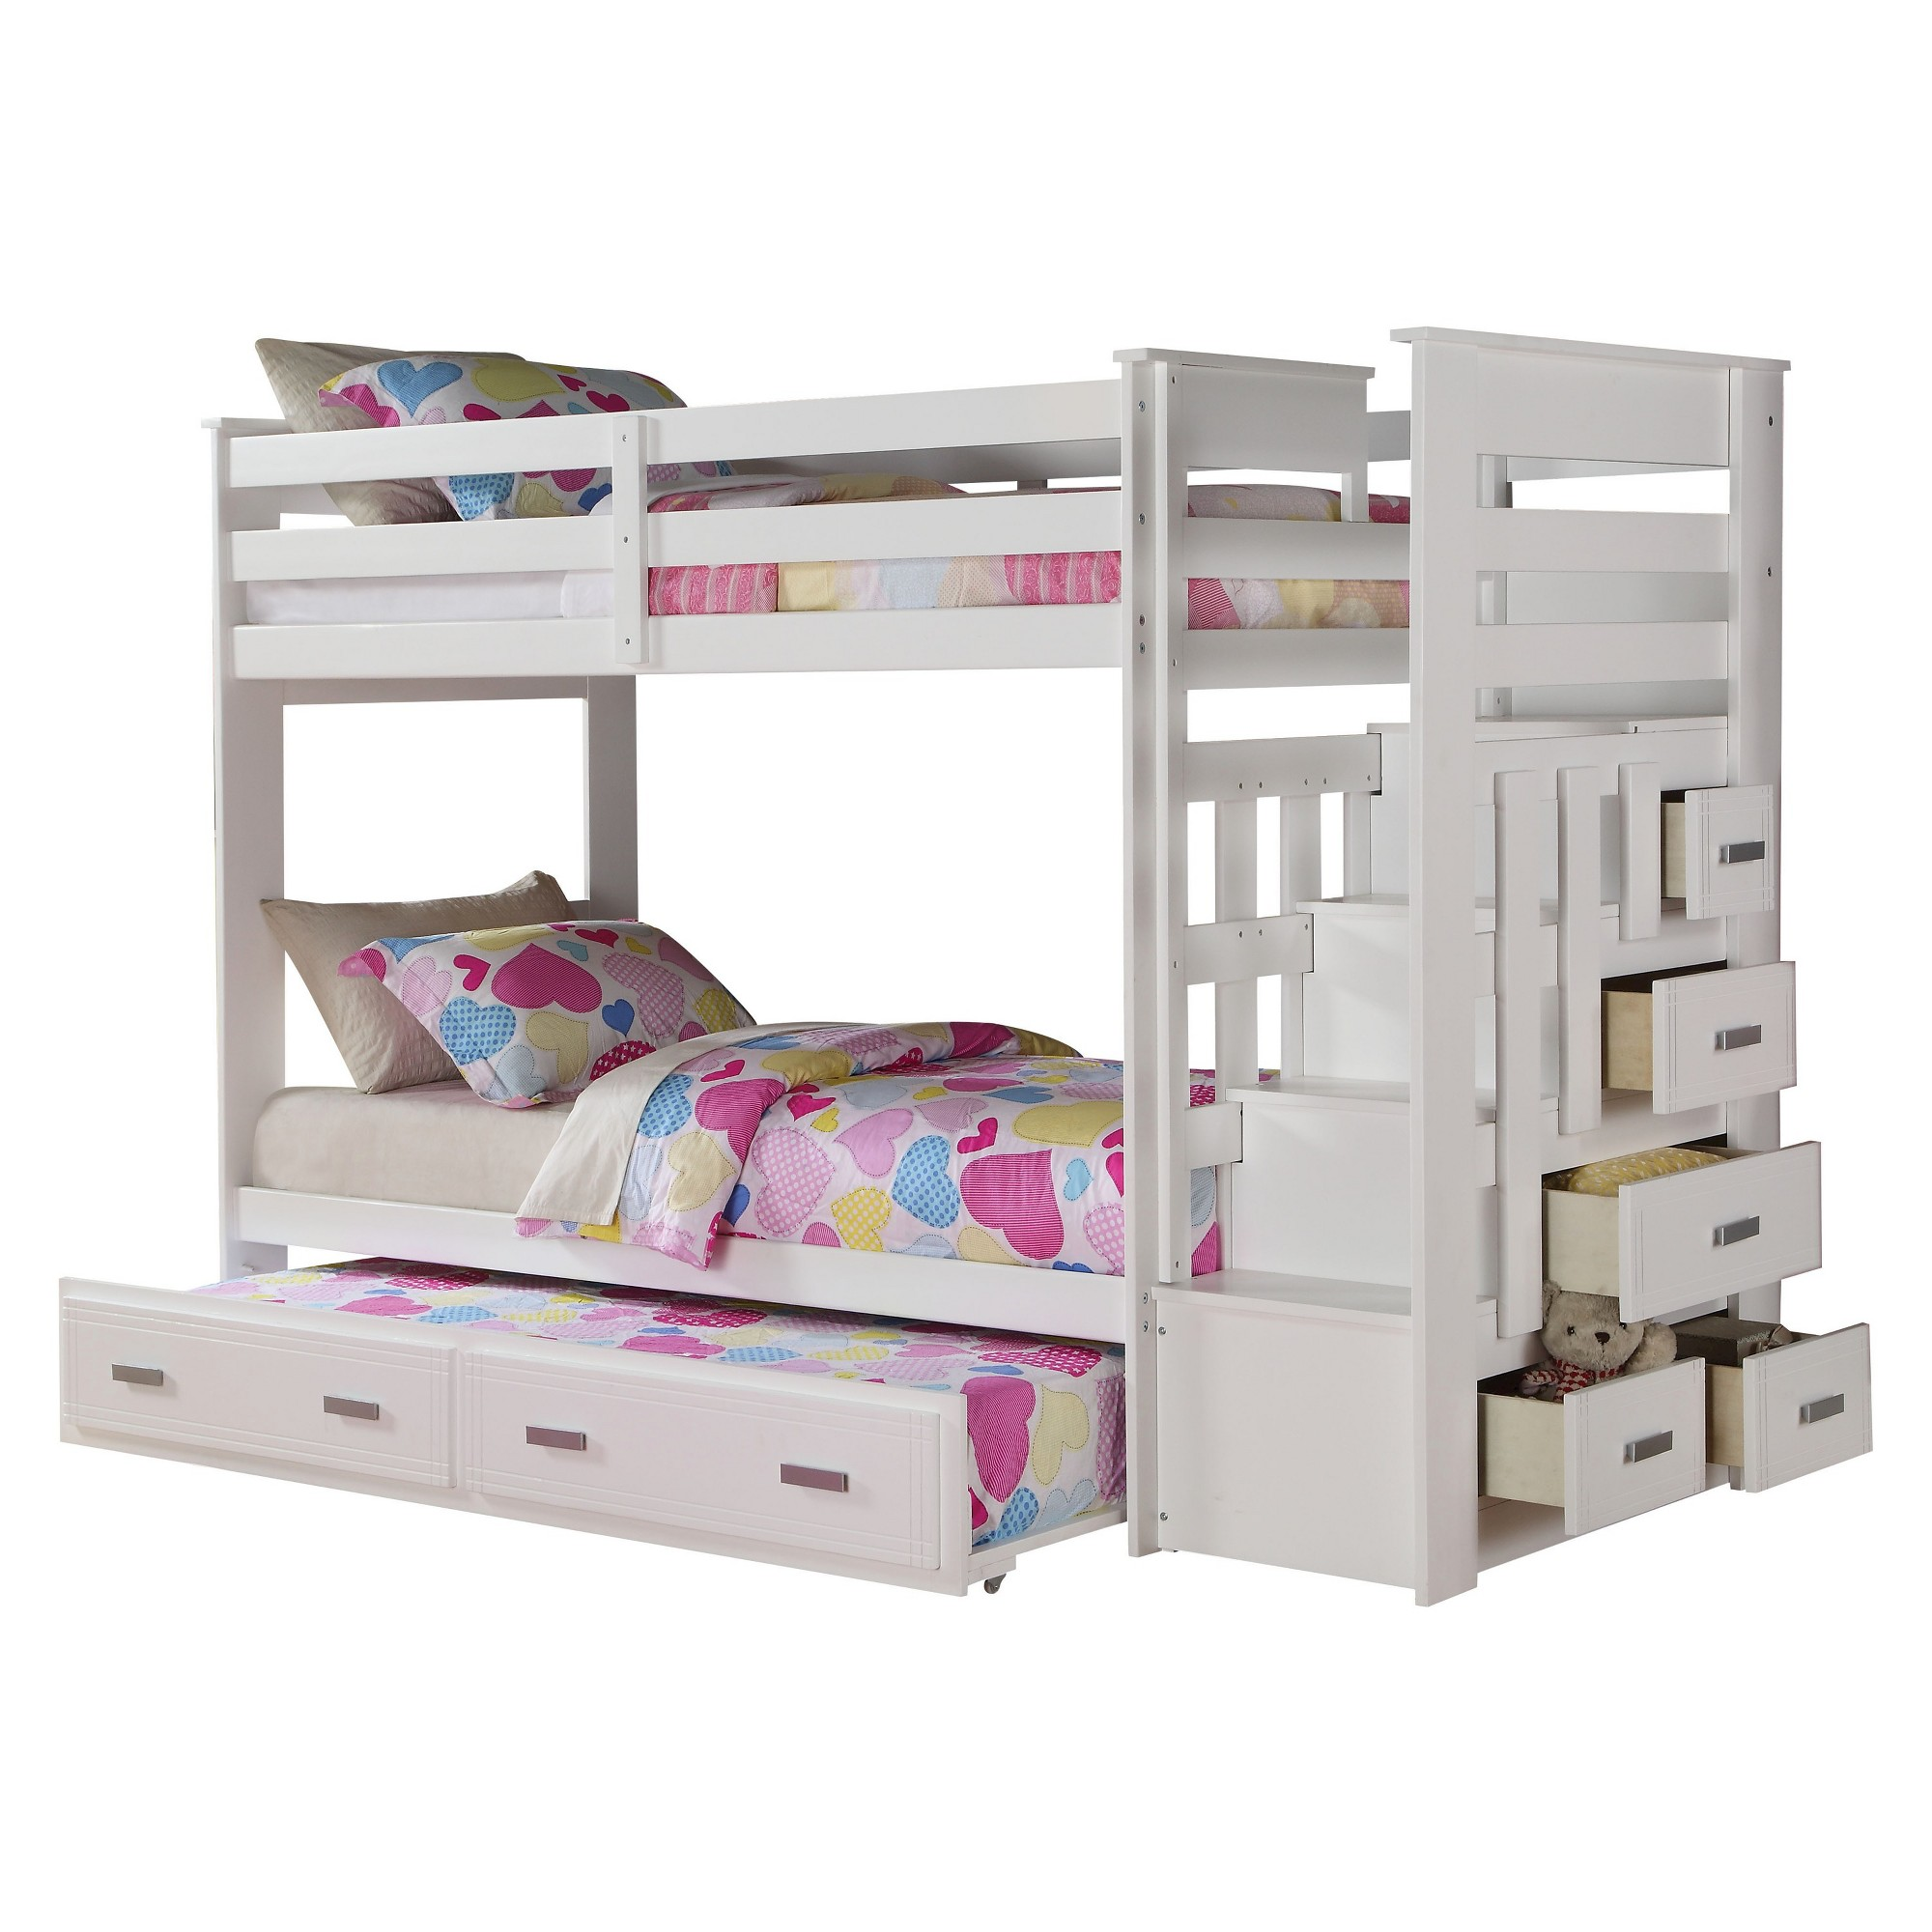 Pin By Cierra Alley Dalzell On Bunk Beds - Pinterest -